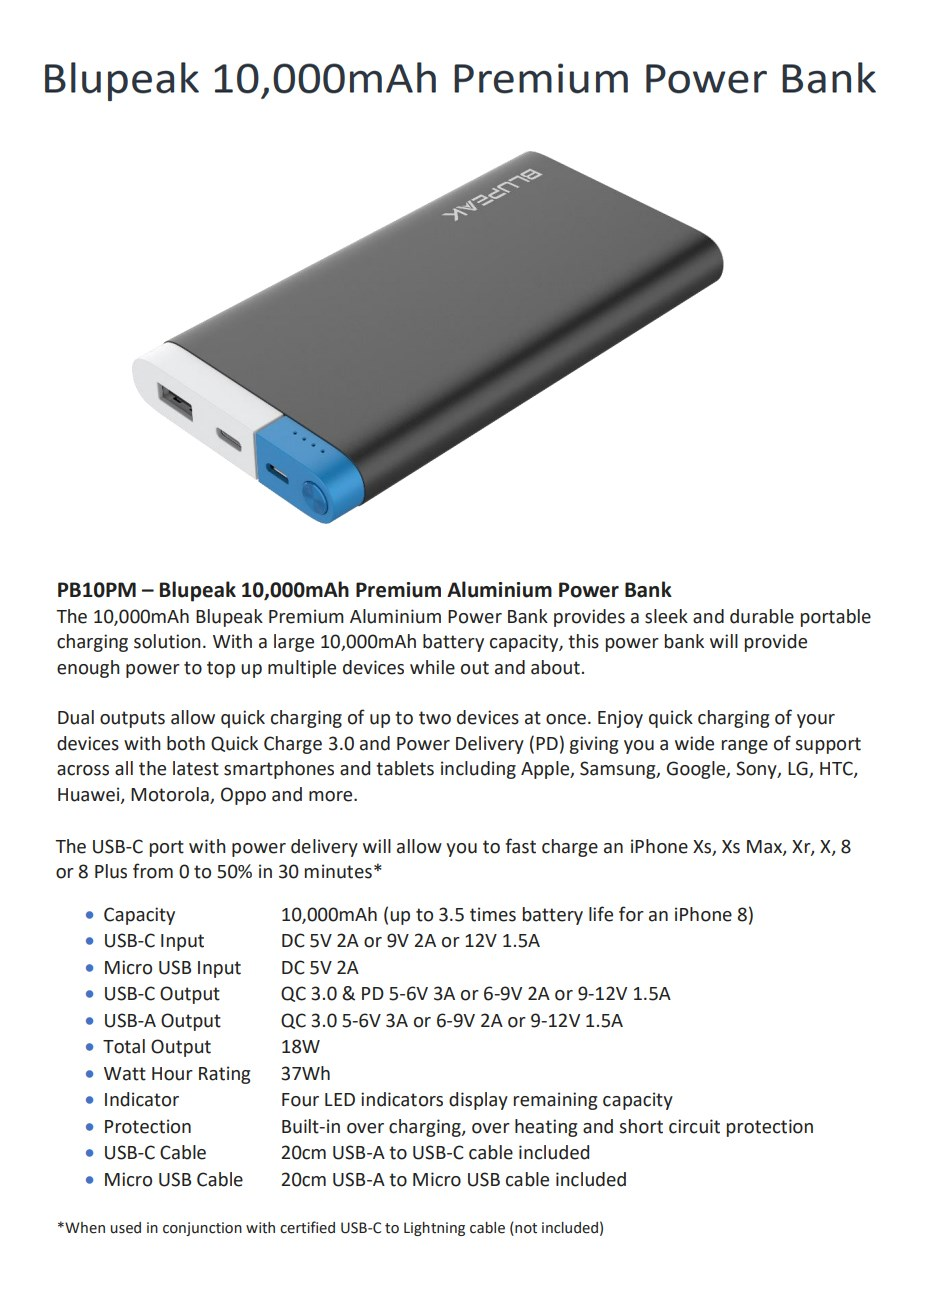 Blupeak 10000mAh Premium Aluminium USB-A & USB-C Power Bank - Desktop Overview 1